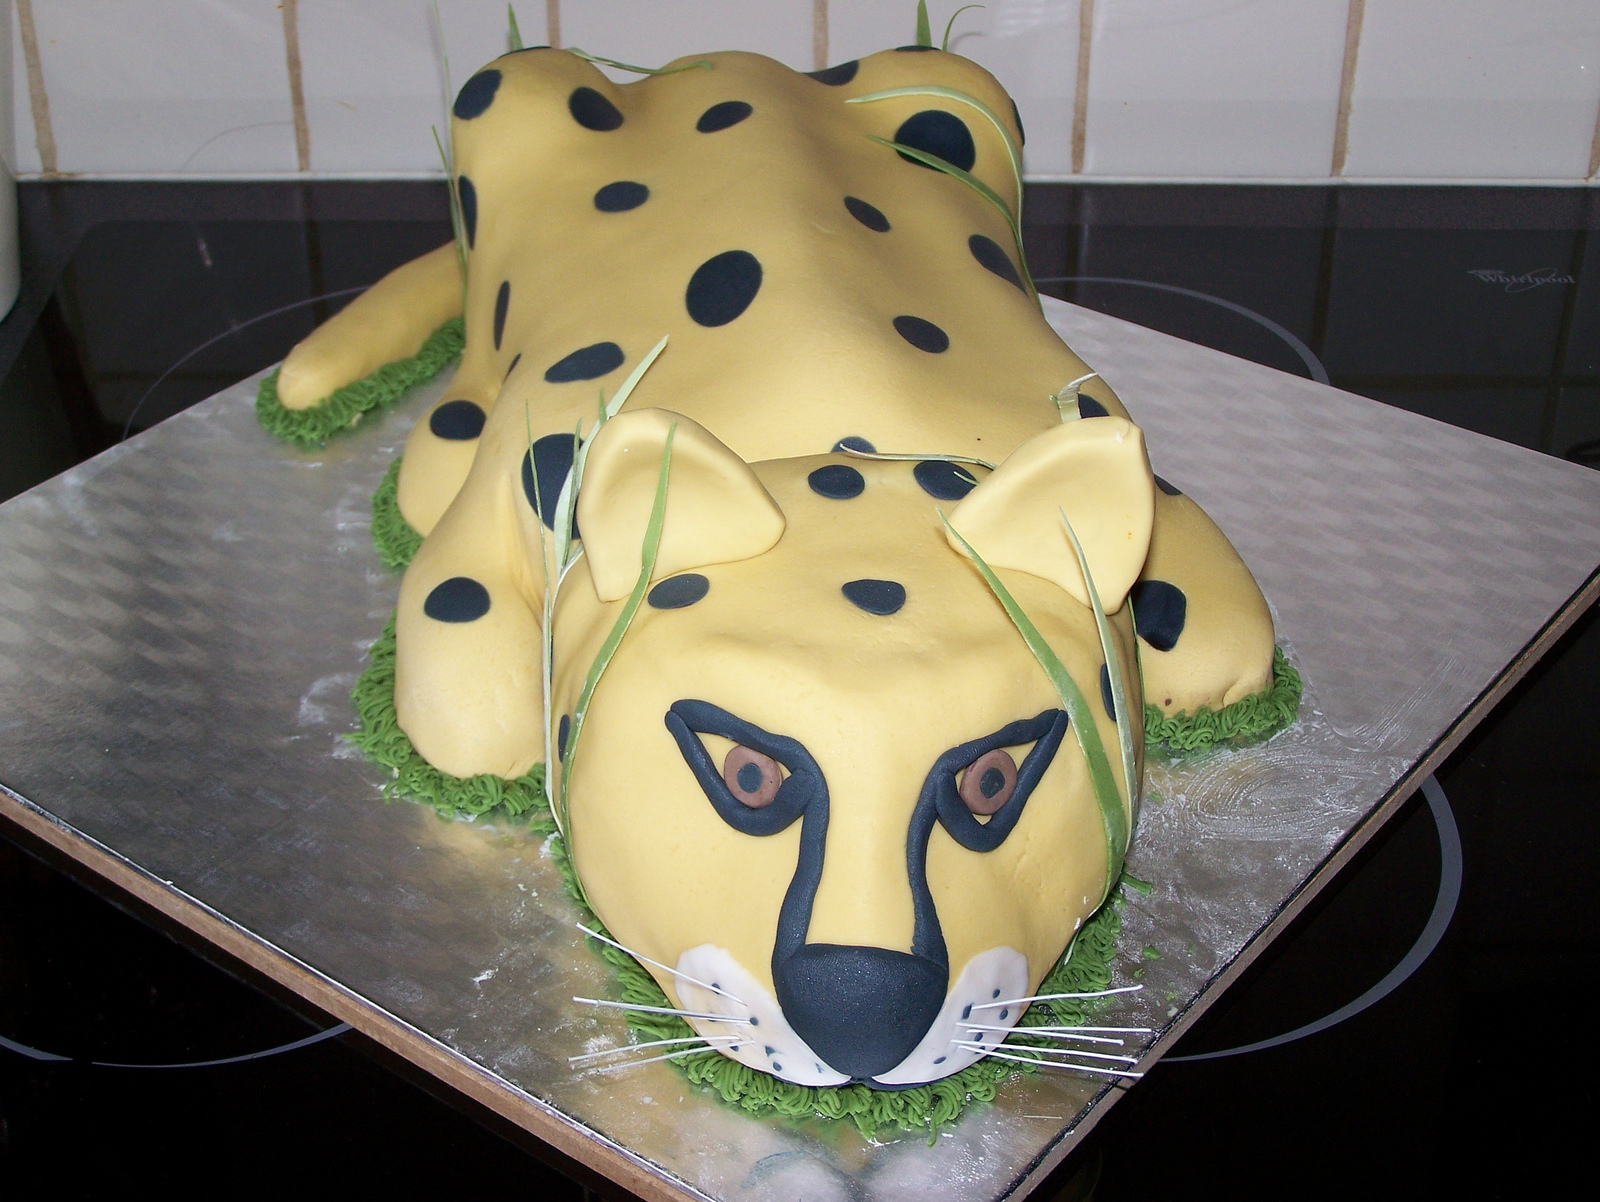 Swell Cheetah Cakes Decoration Ideas Little Birthday Cakes Personalised Birthday Cards Petedlily Jamesorg